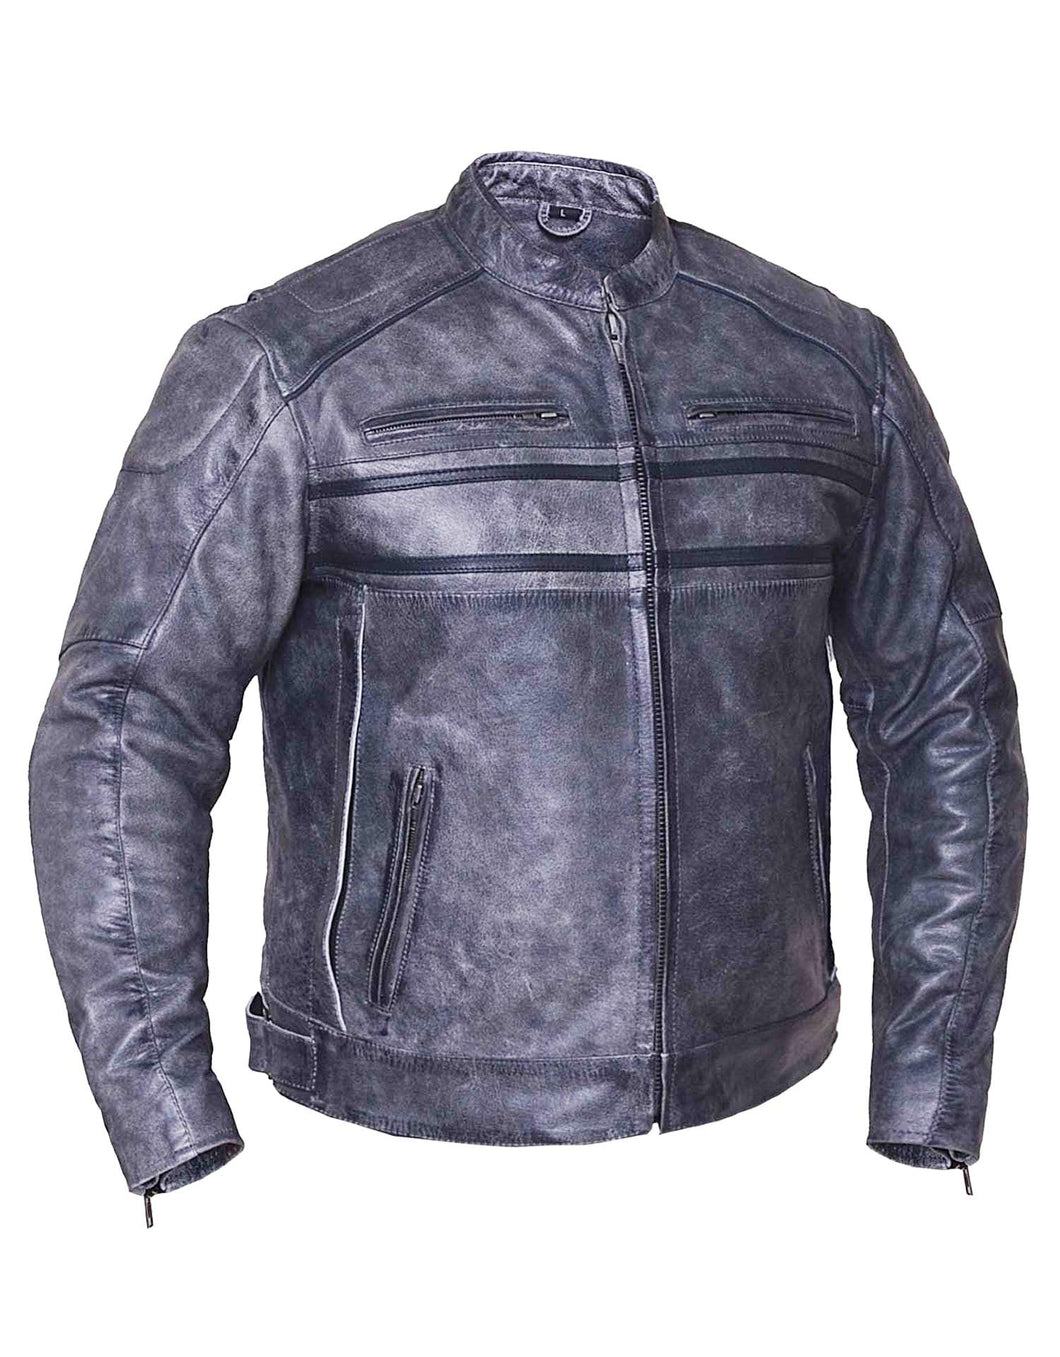 UNIK Men's Tombstone Gray Premium Leather Motorcycle Jacket - Ghost Rider Leather